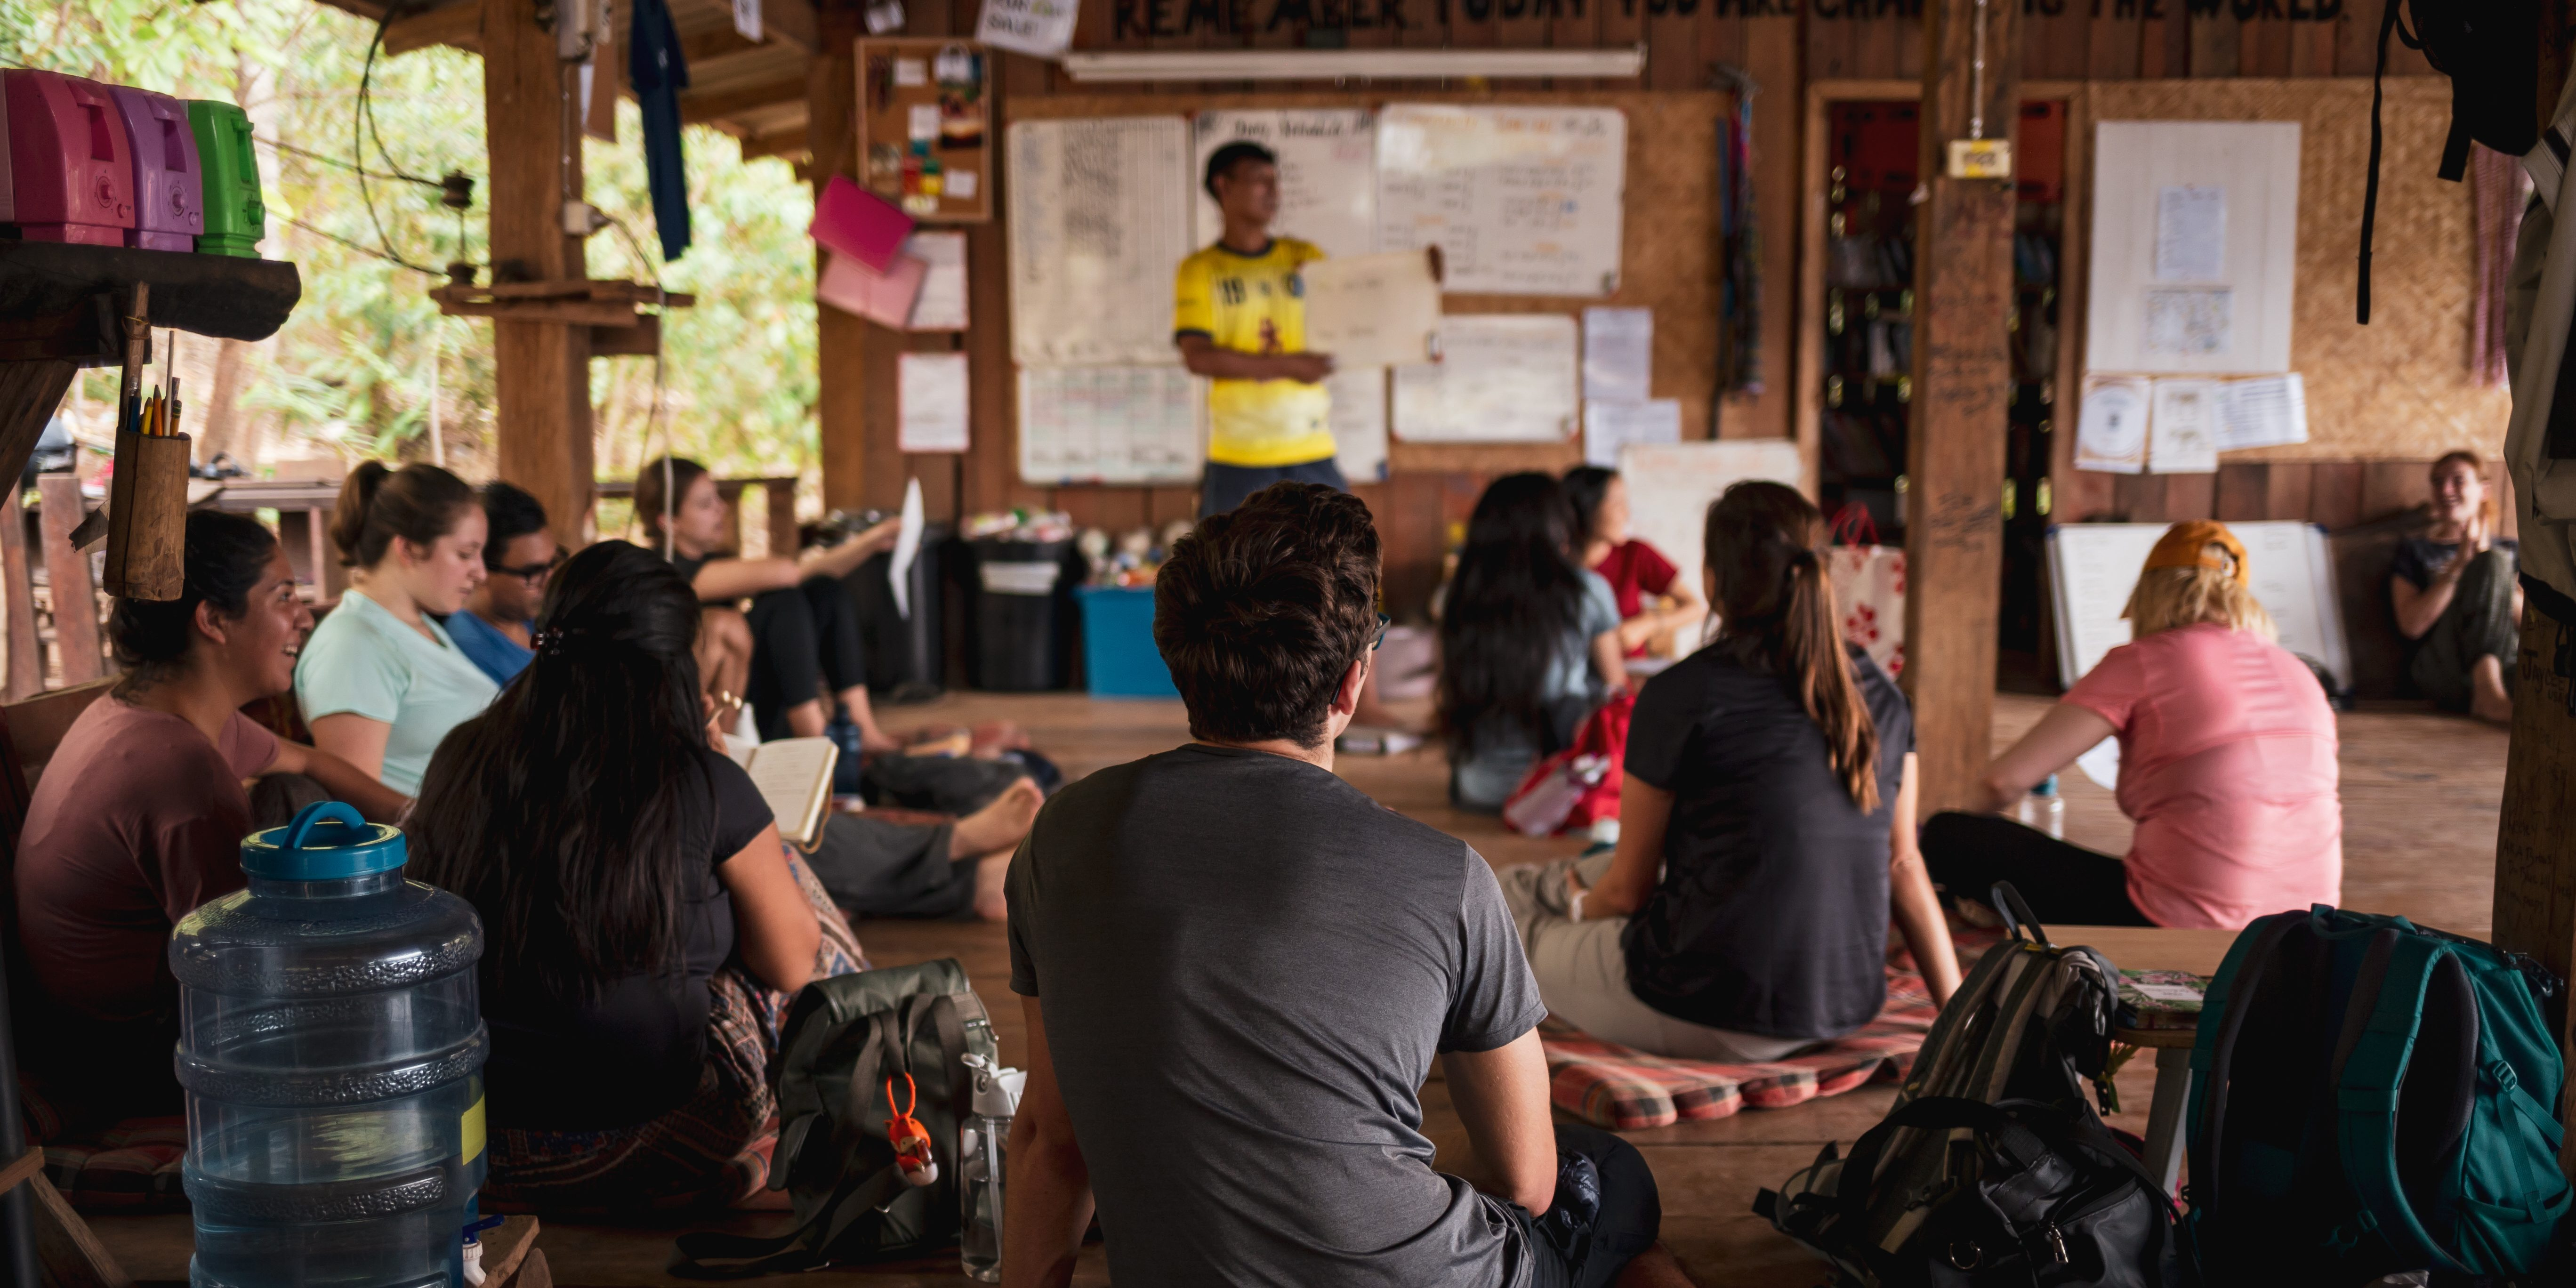 Participants apply a growth mindset while learning conservation techniques in Chiang Mai.